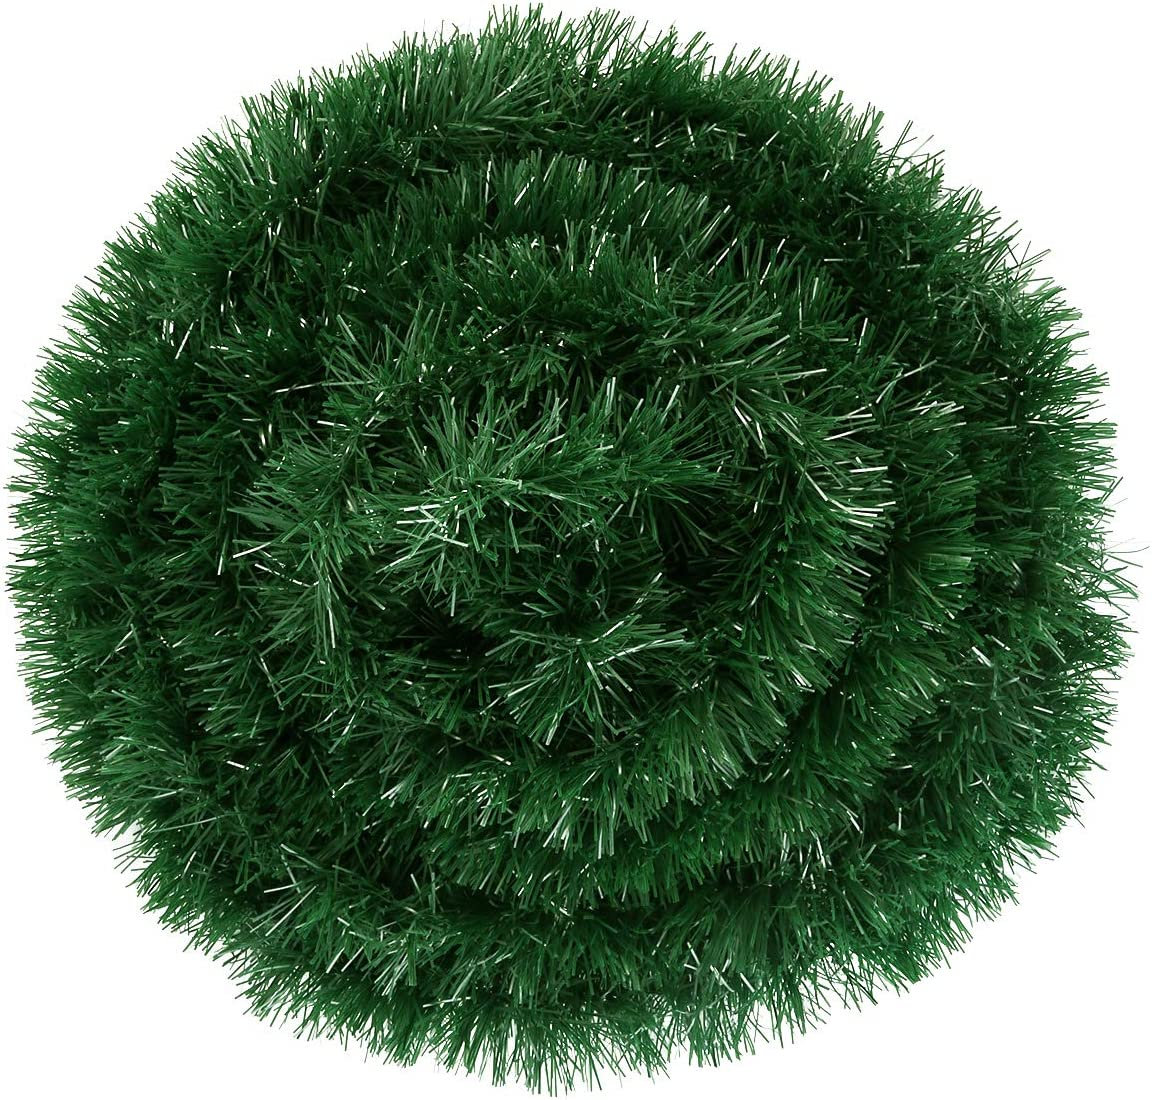 50 Foot Christmas Garland Decorations, Artificial Pine Garland Soft Green Garland for Holiday Wedding Party Decor, Outdoor/Indoor Use